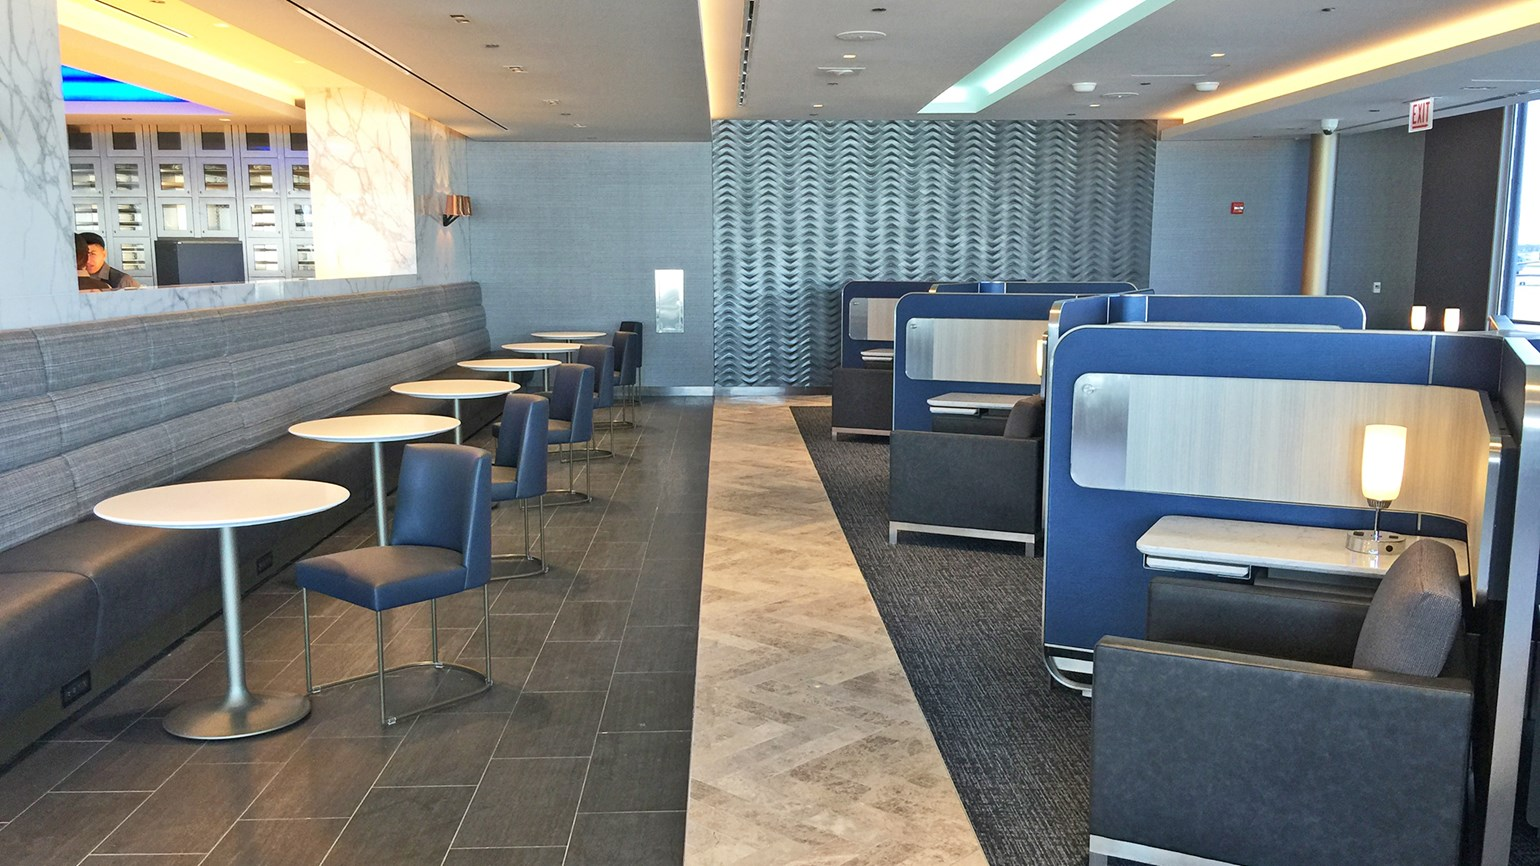 United's first Polaris business-class lounge opens in Chicago